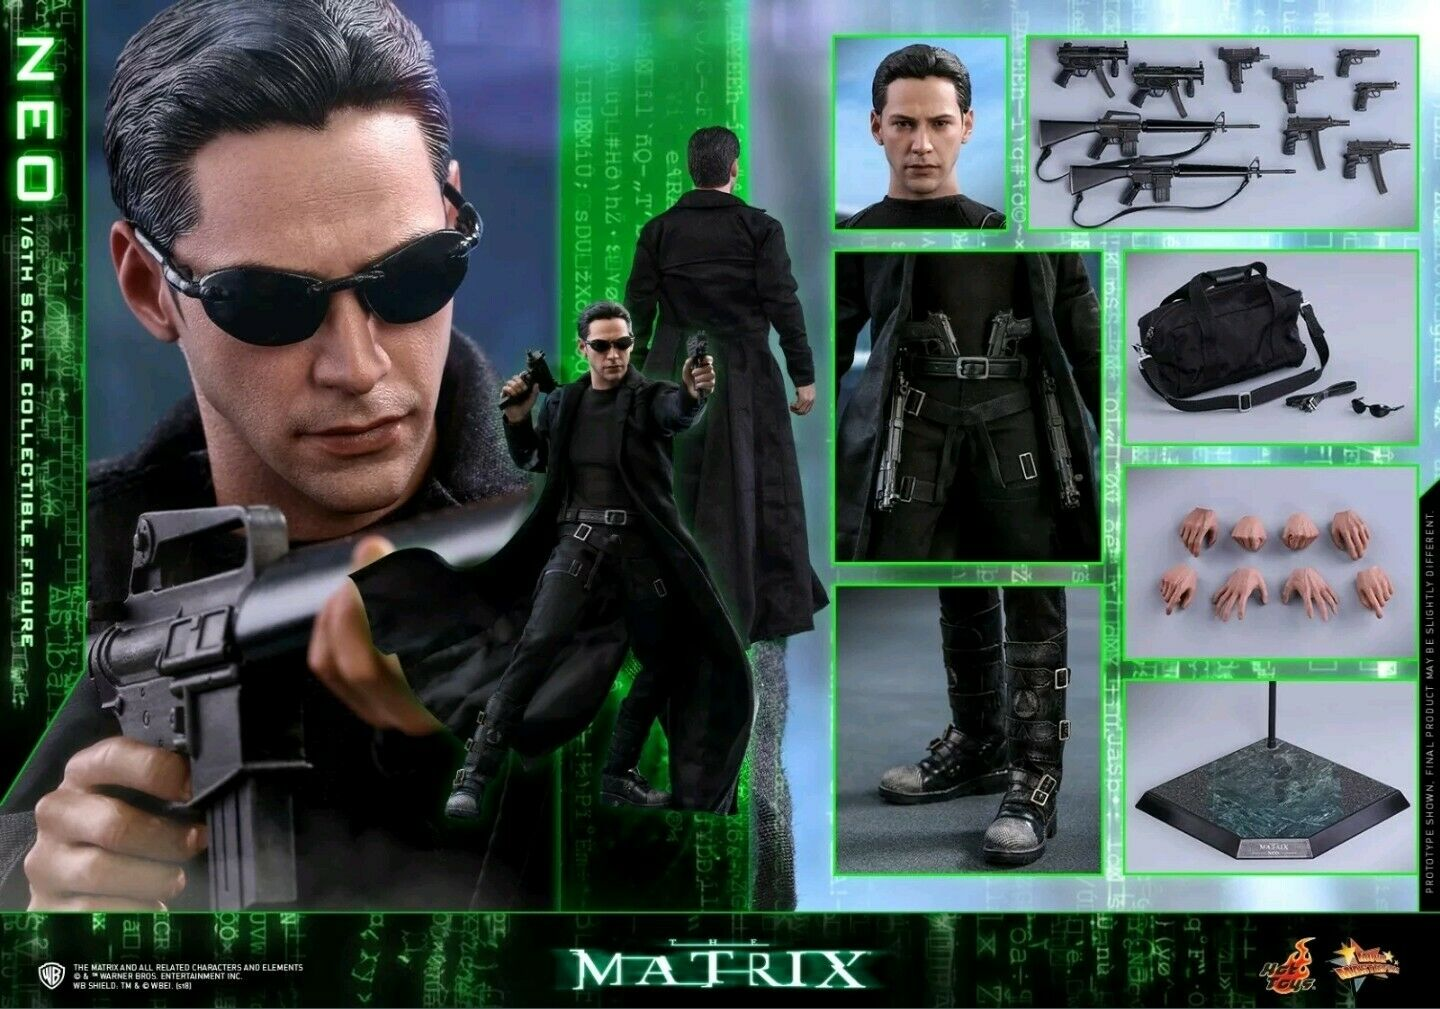 Hot Toys Matrix neo 1 6th Scale Collectibles brand new ready to ship from UK.